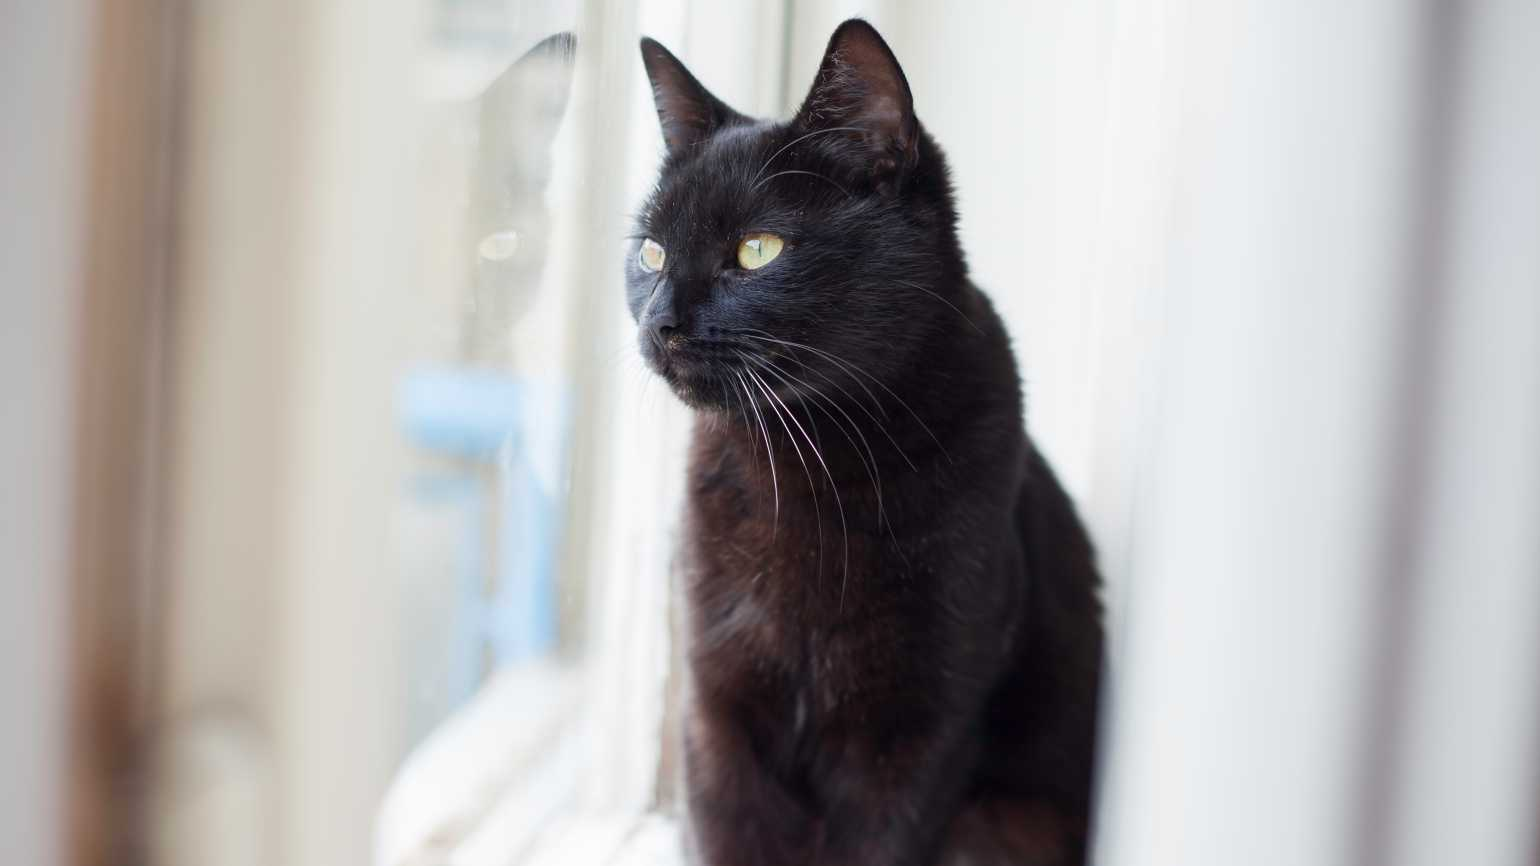 Adopting a Stray Cat Changed Her Life